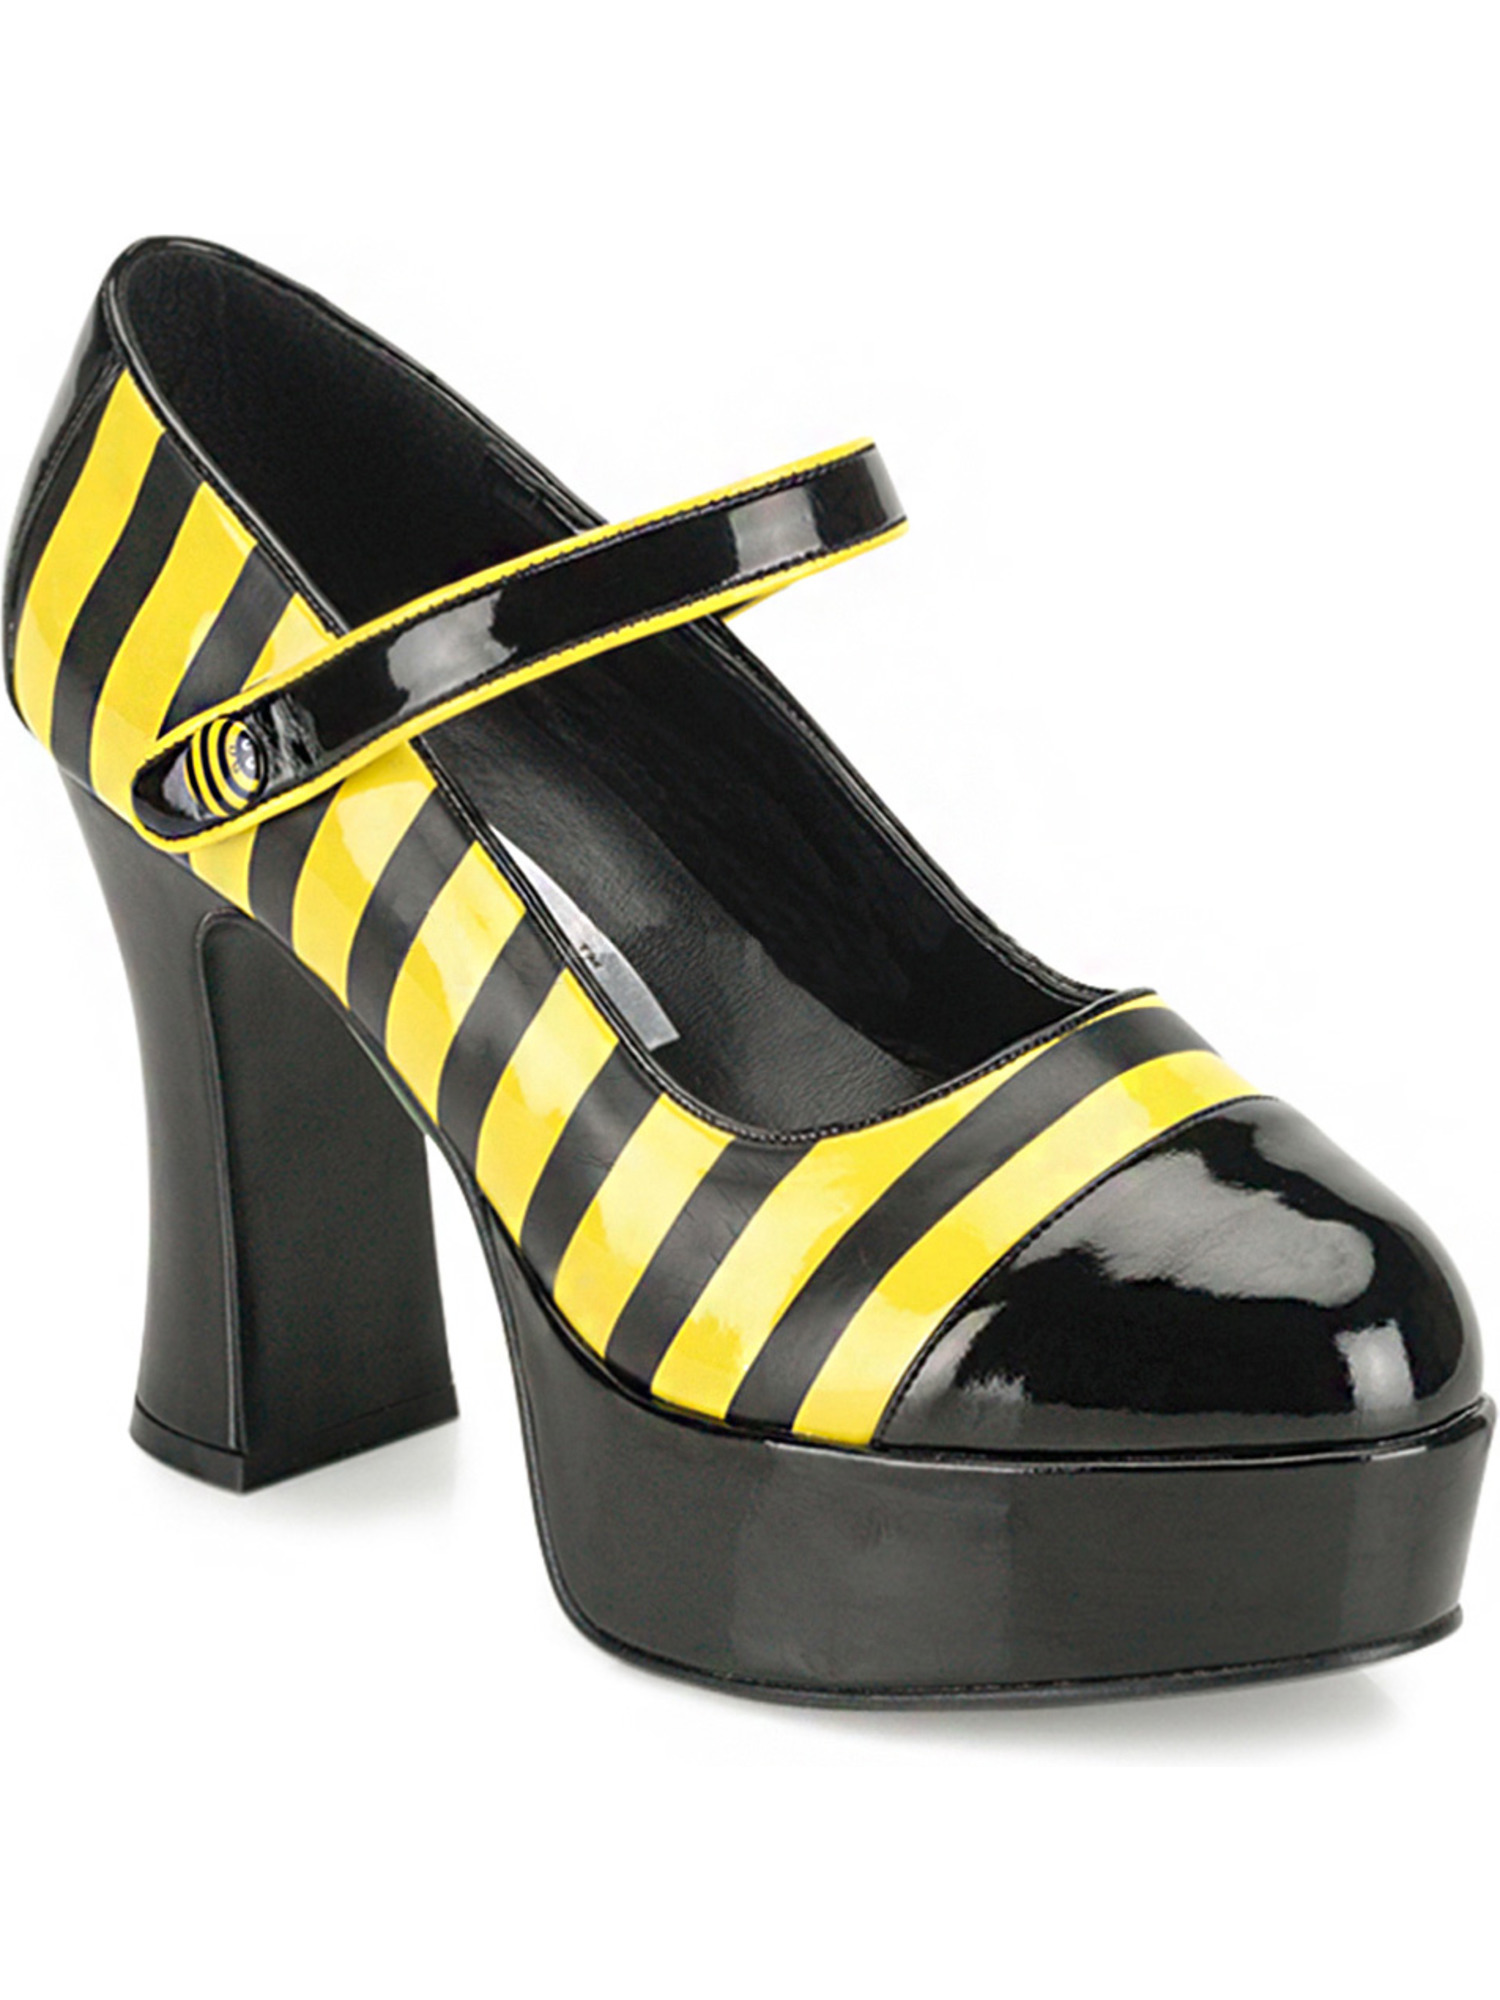 BEE Shoes Animal Bumble Striped Flats Dress Up Halloween Adult Costume Accessory